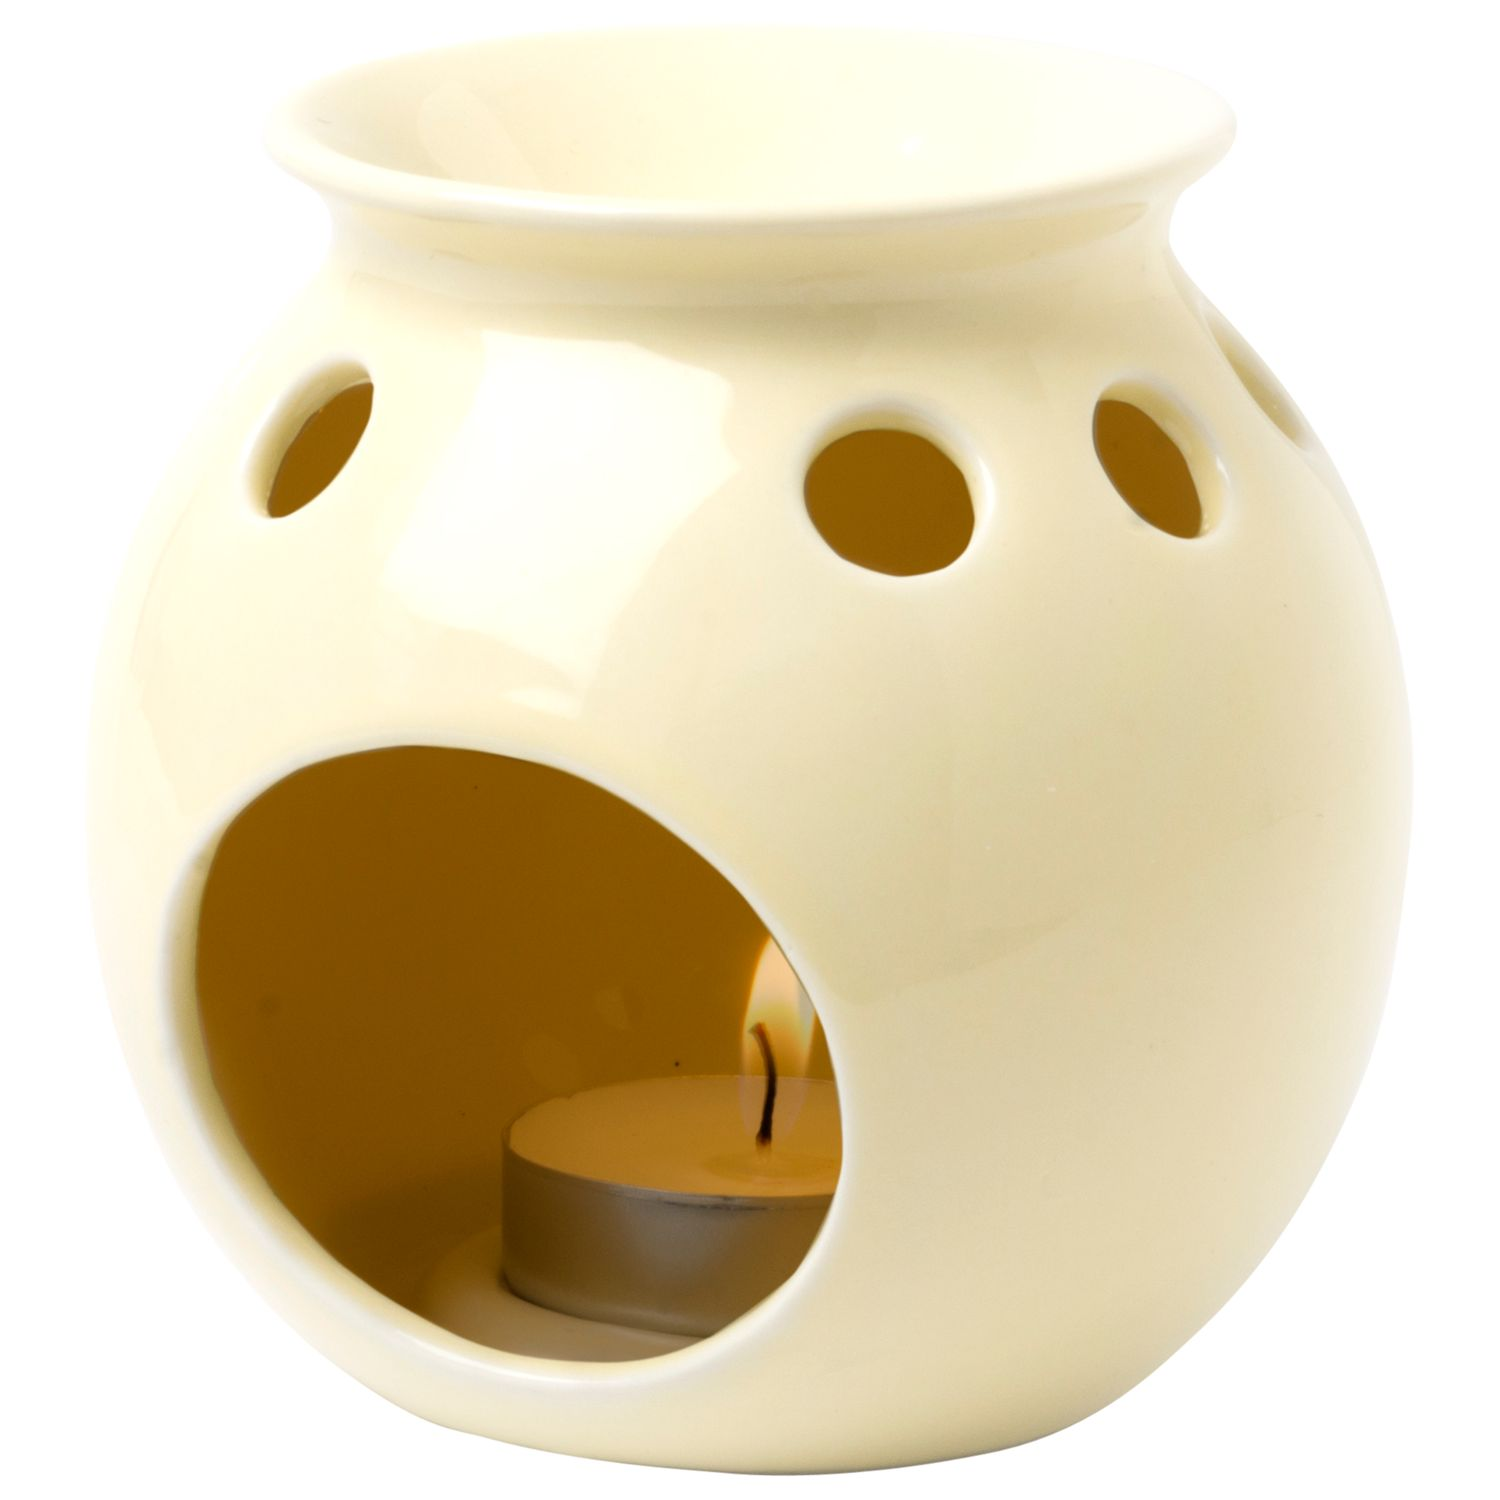 Heyland and Whittle Ceramic Oil Burner